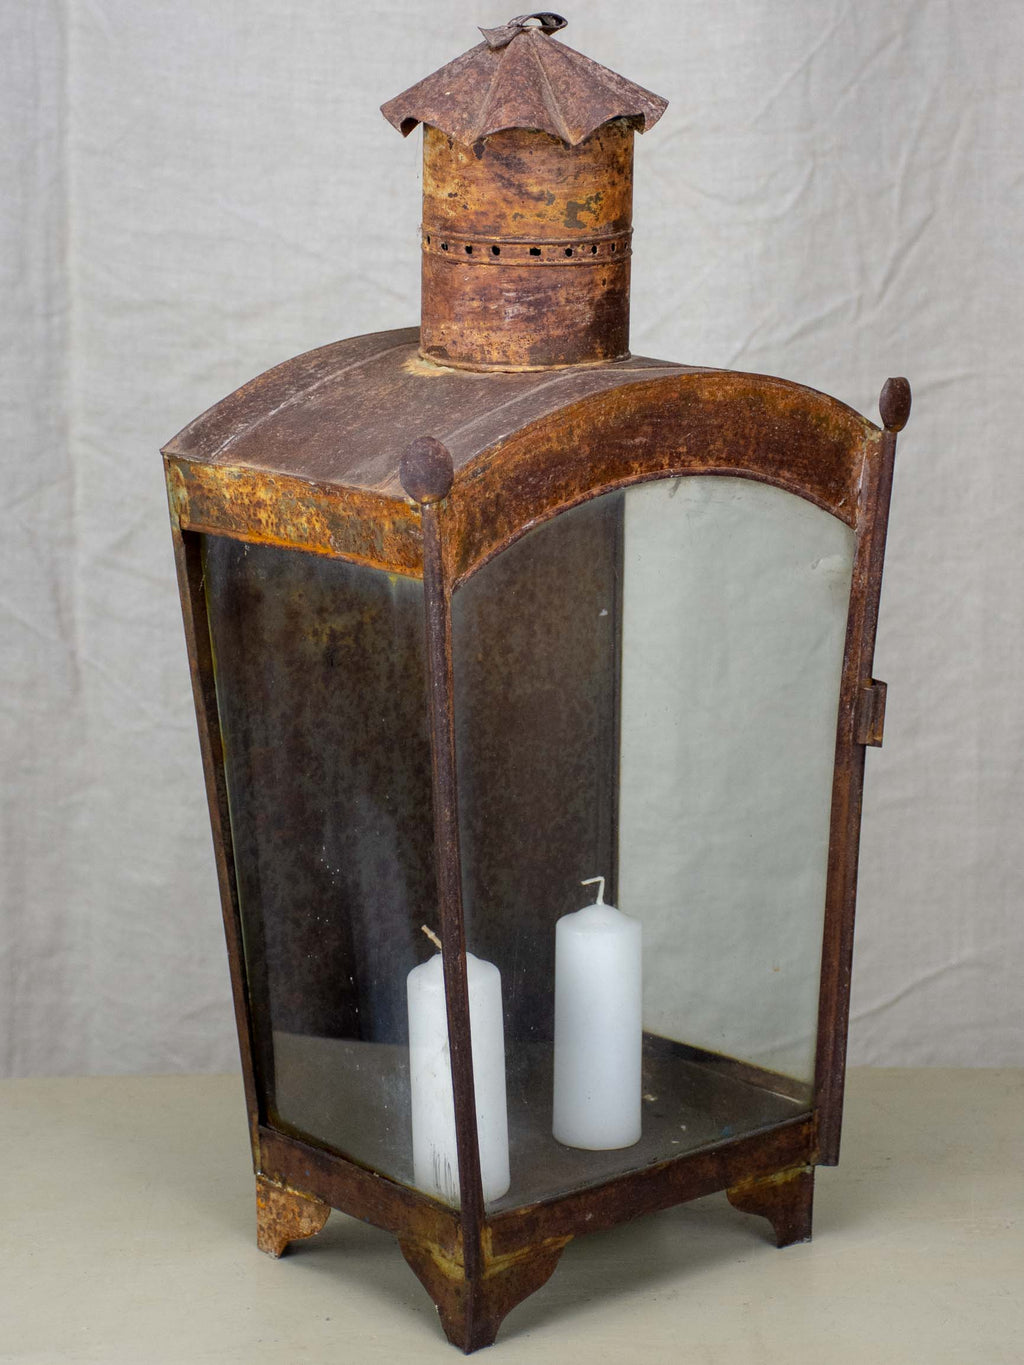 Large antique French wall lantern